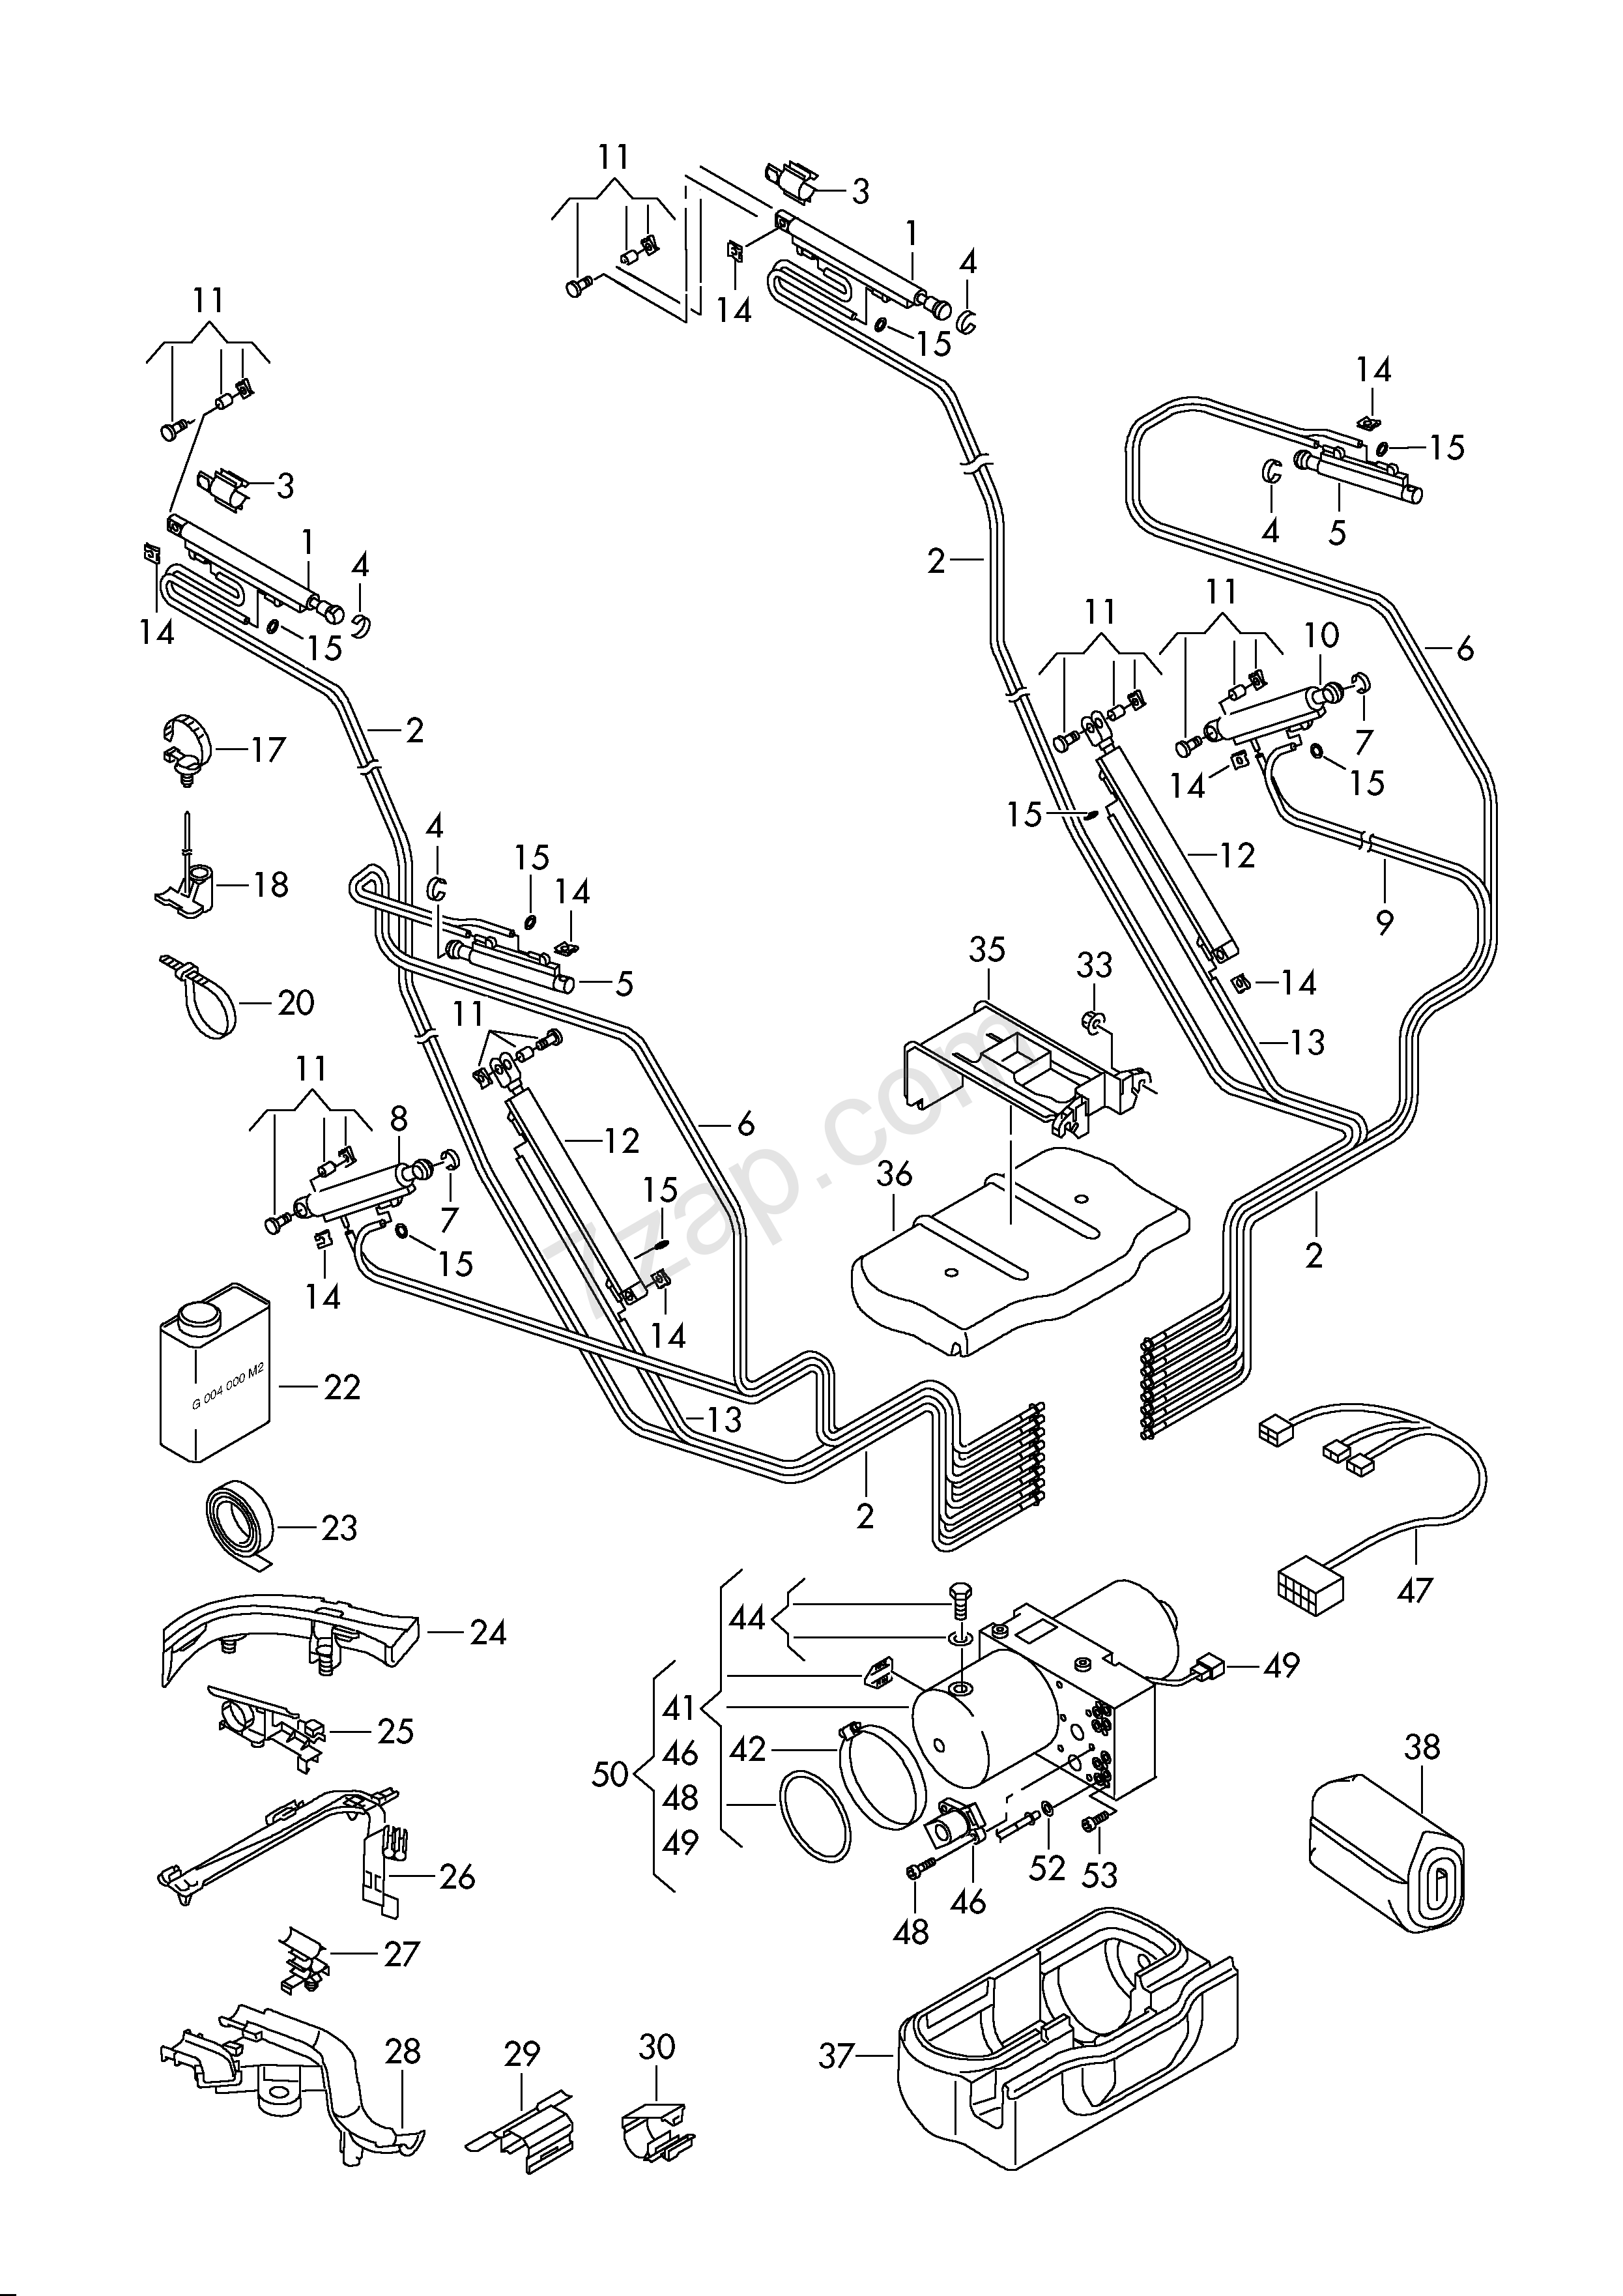 hydraulic system for actuating convertible roof eos  eos  2016 year volkswagen europa 871060